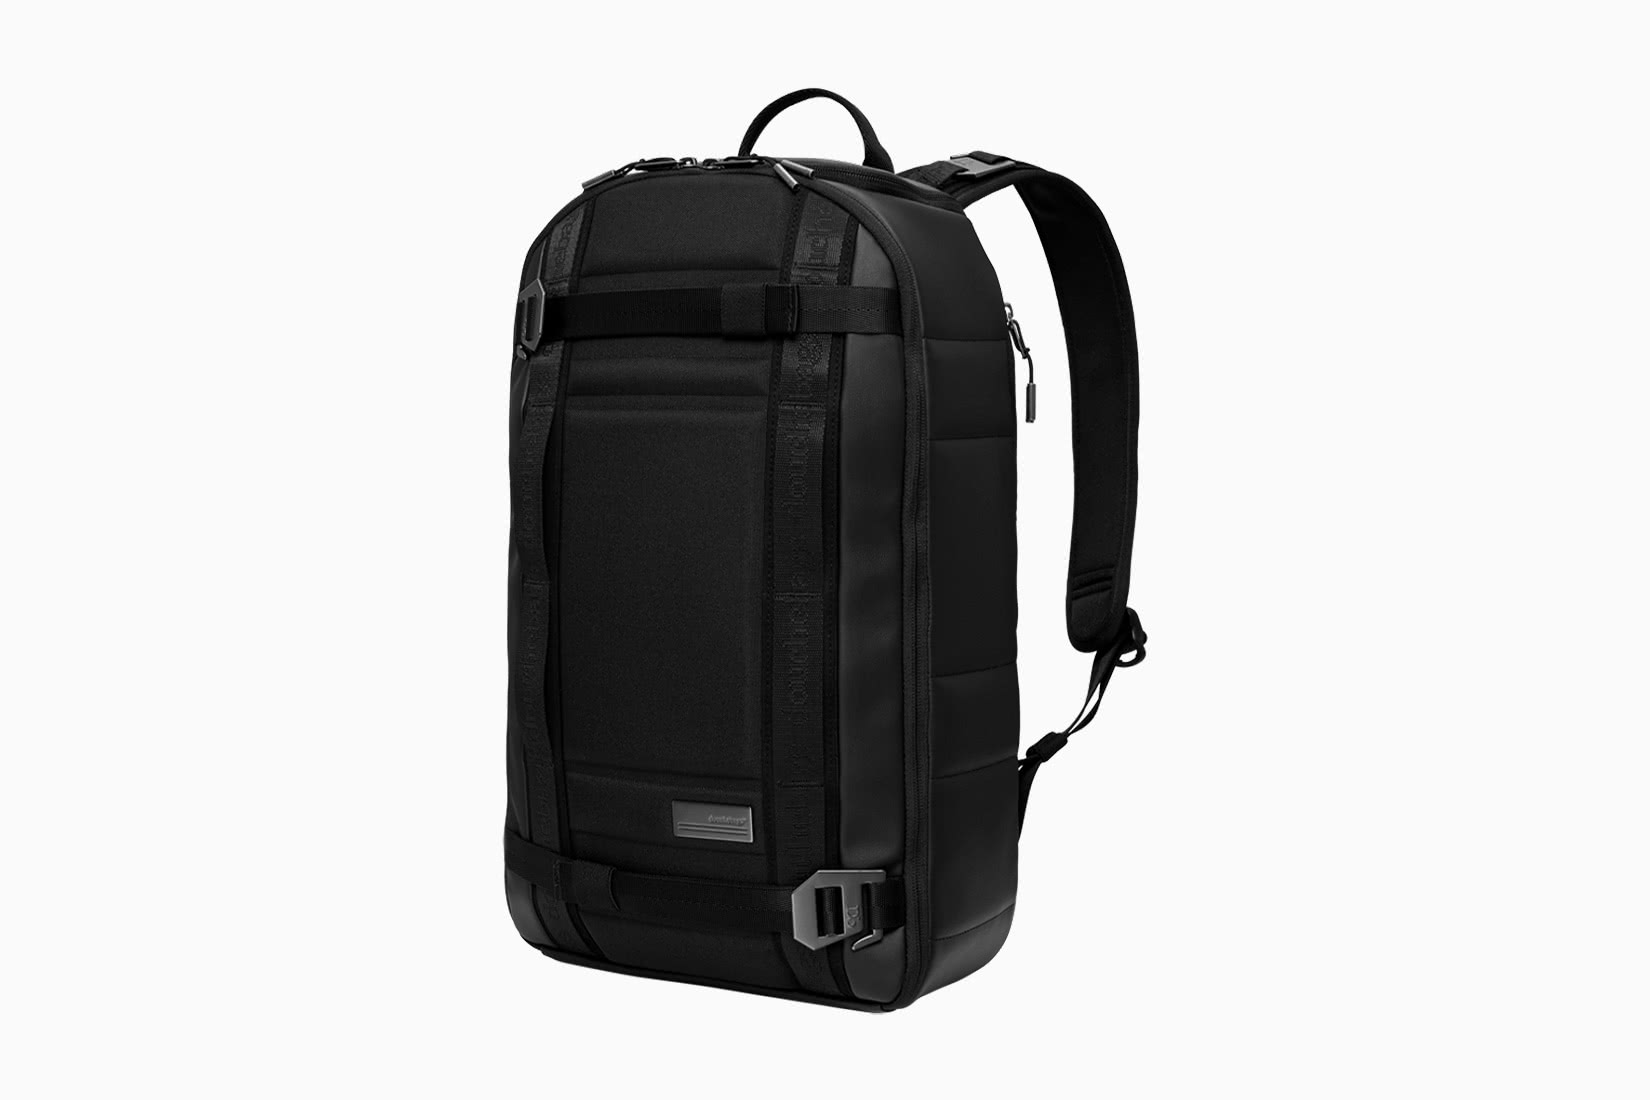 best edc backpack all black db review - Luxe Digital